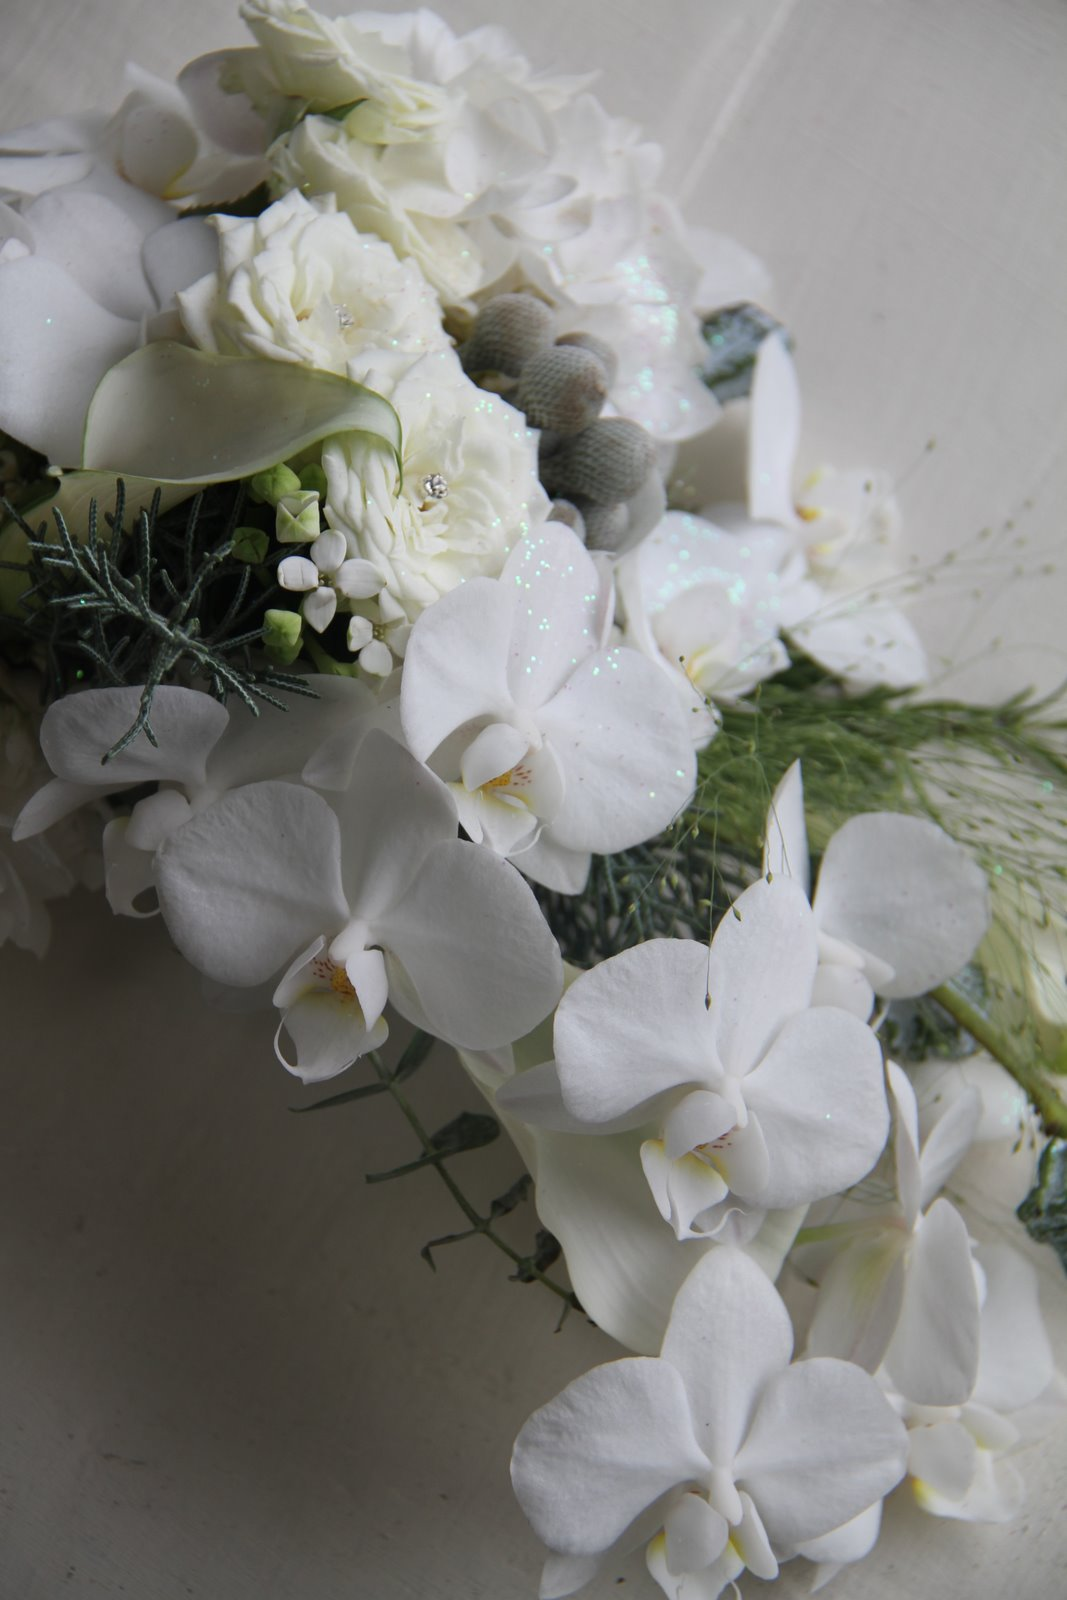 The flower magician november 2011 gorgeous wedding bouquet of phalaenopsis orchids bouvardia crystal blush calla lilies roses eucalyptus globus and champagne grass mightylinksfo